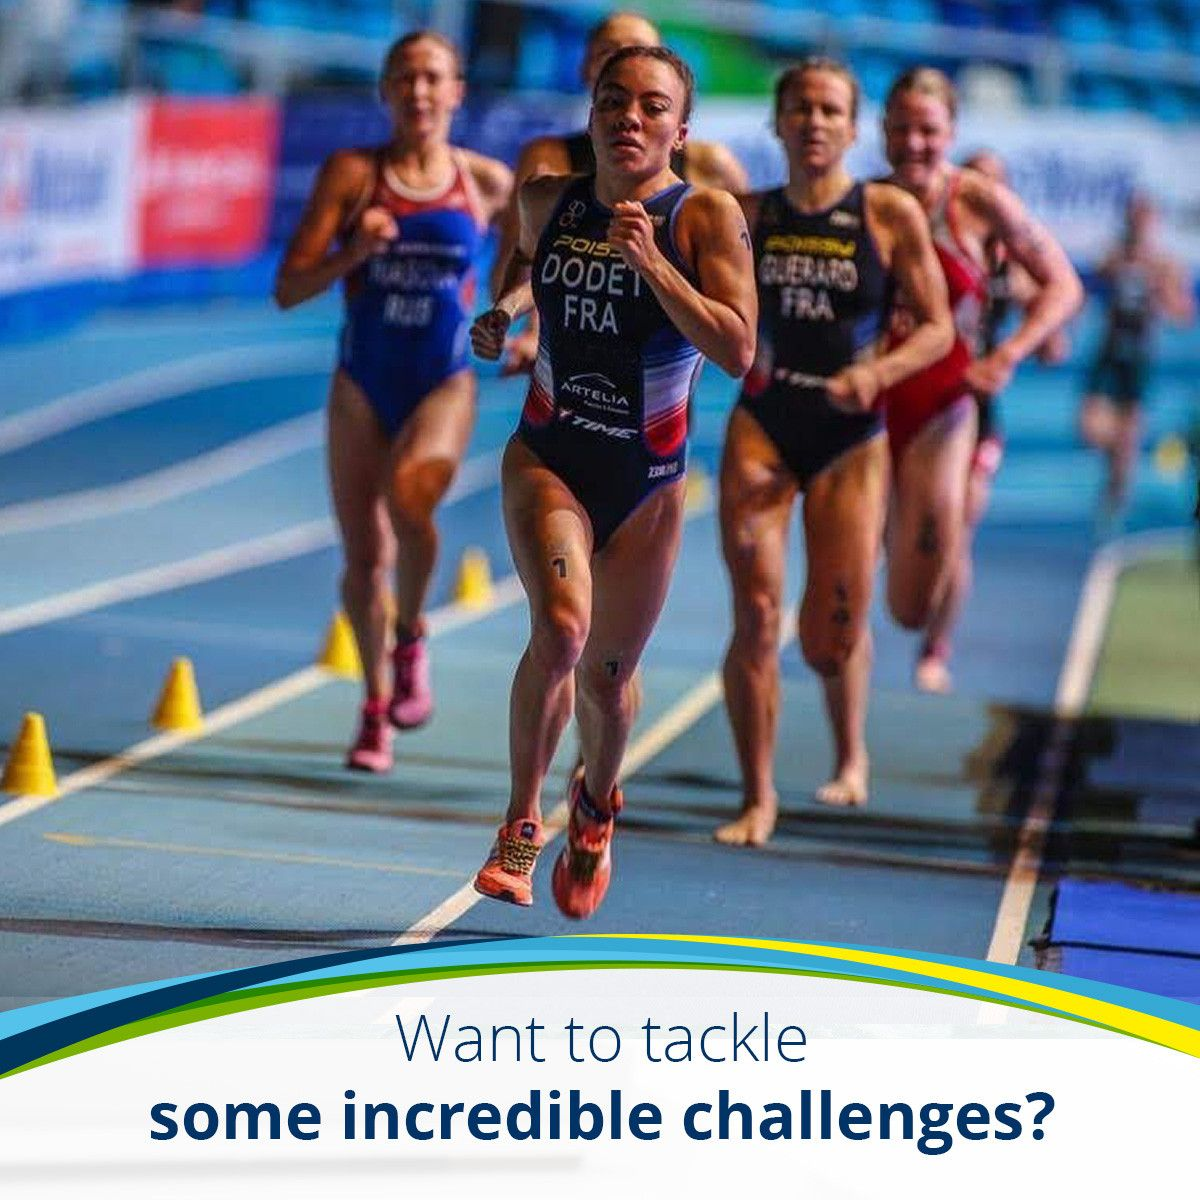 Want to tackle some incredible challenges?